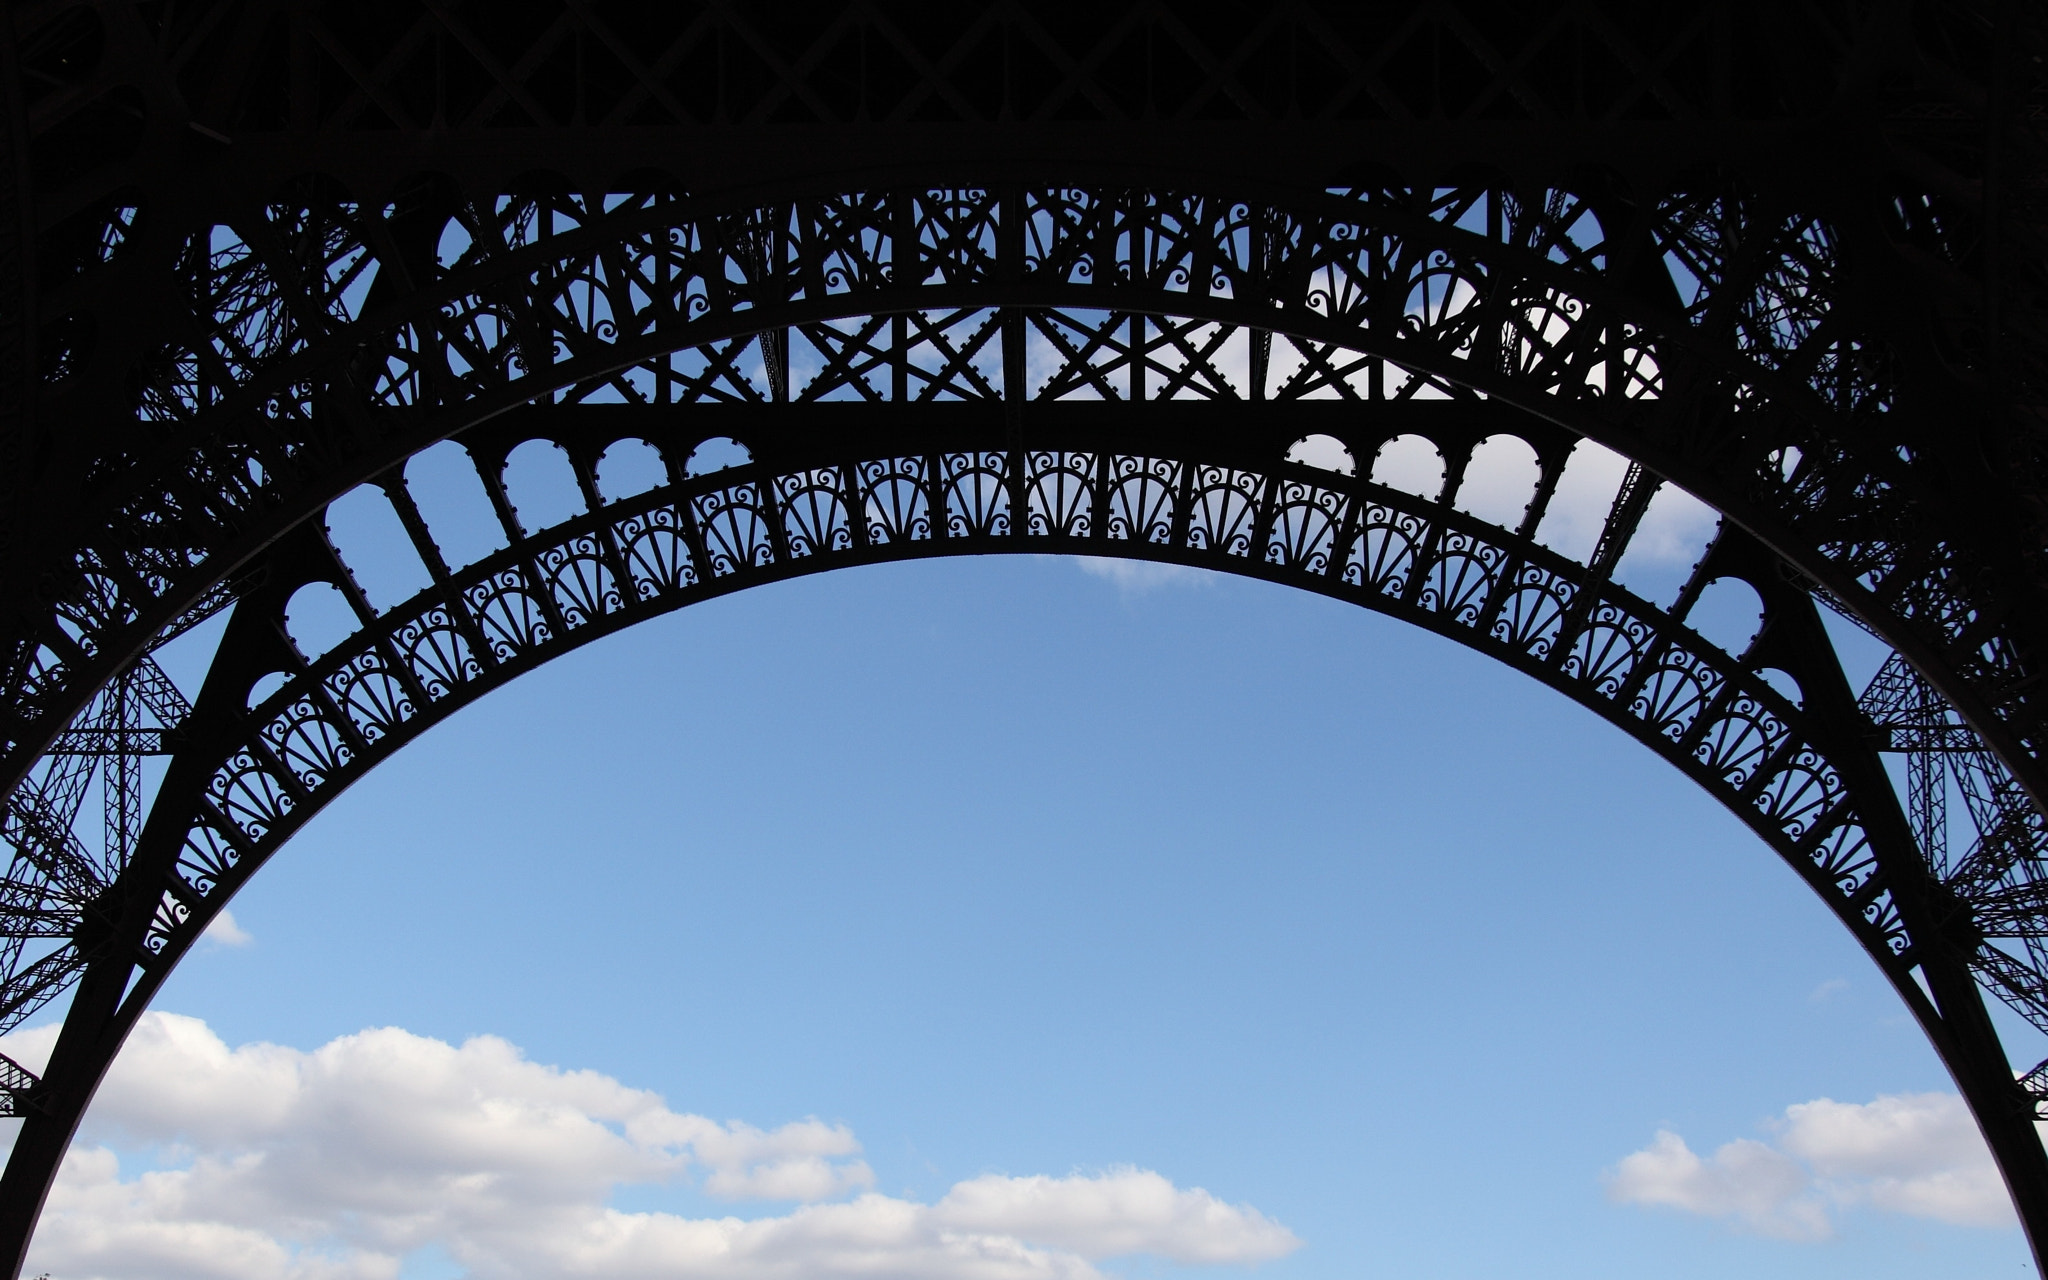 Photograph Eifel Tower by Patrick Banfield on 500px